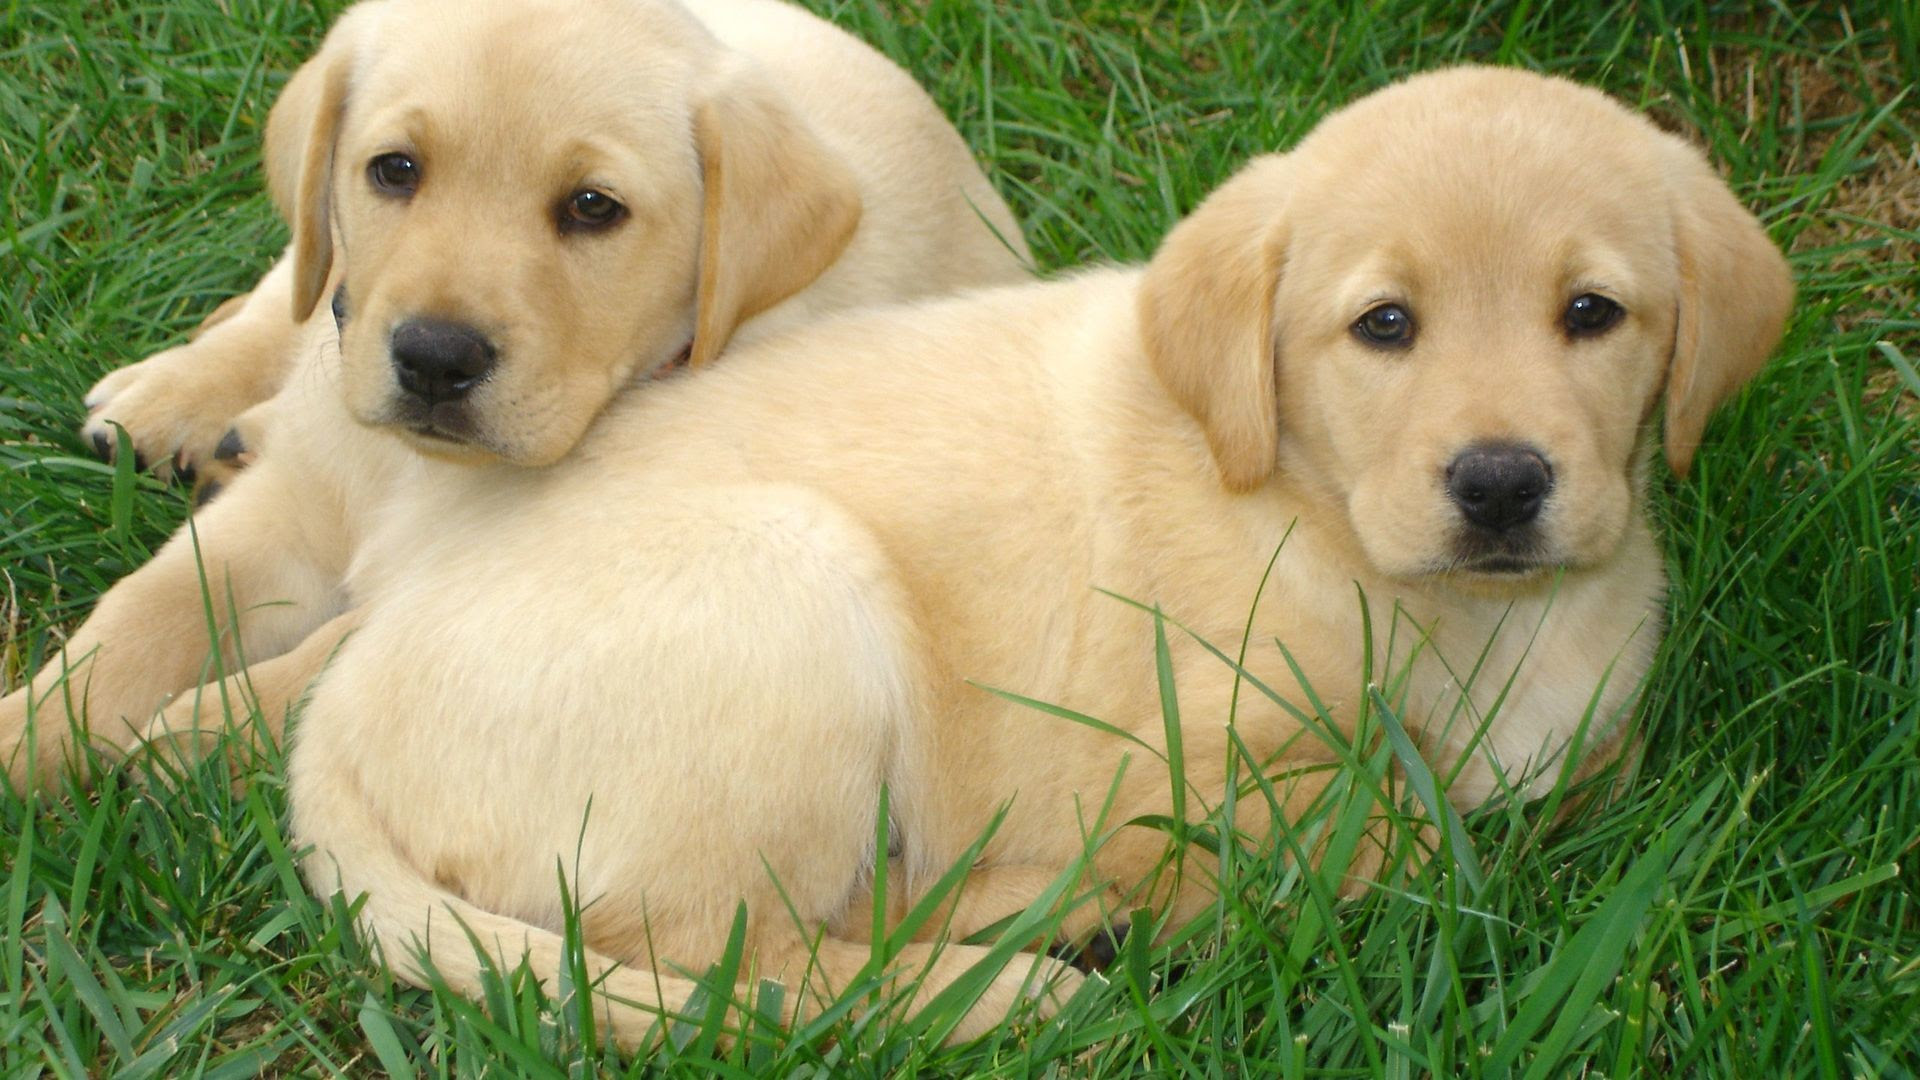 Puppy Wallpaper and Screensavers (53+ images)